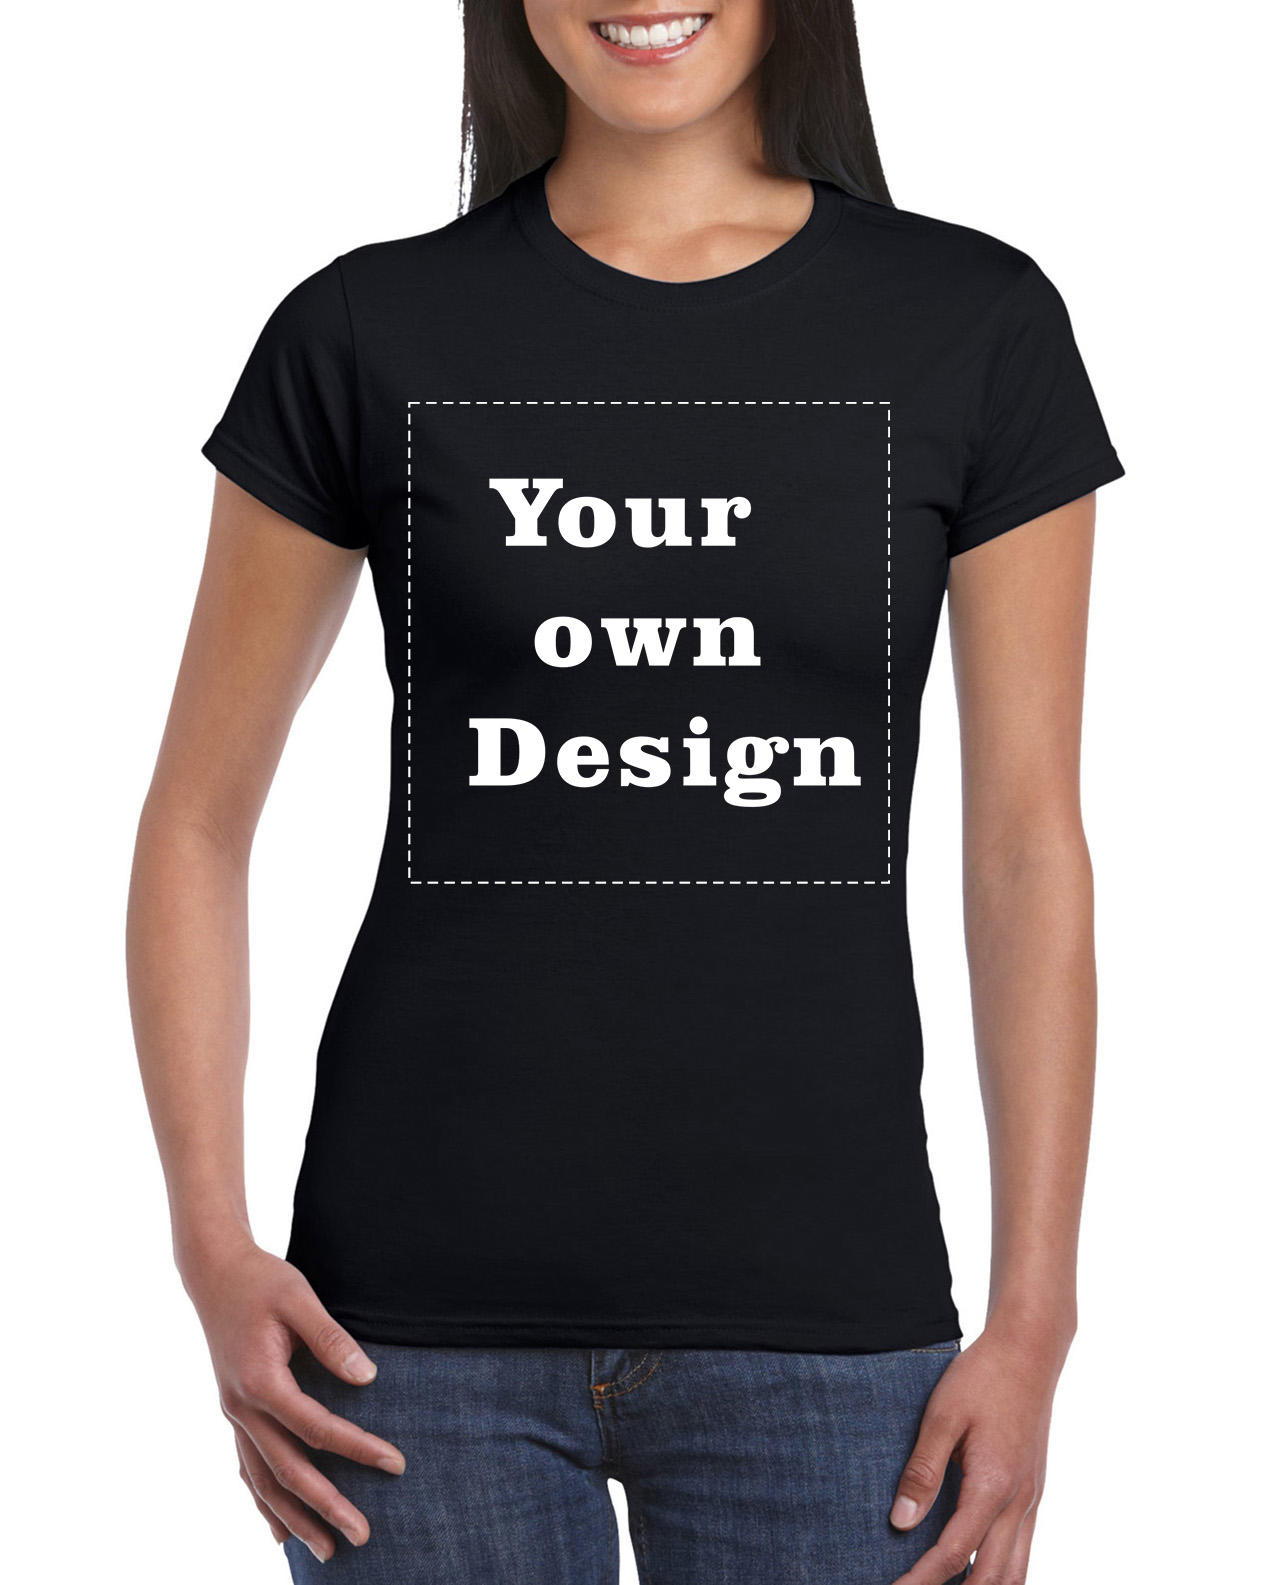 Design your own t shirt good quality - 2016 Women Black Your Own Design T Shirt Novelty Tops Lady Custom Printed Short Sleeve Tees